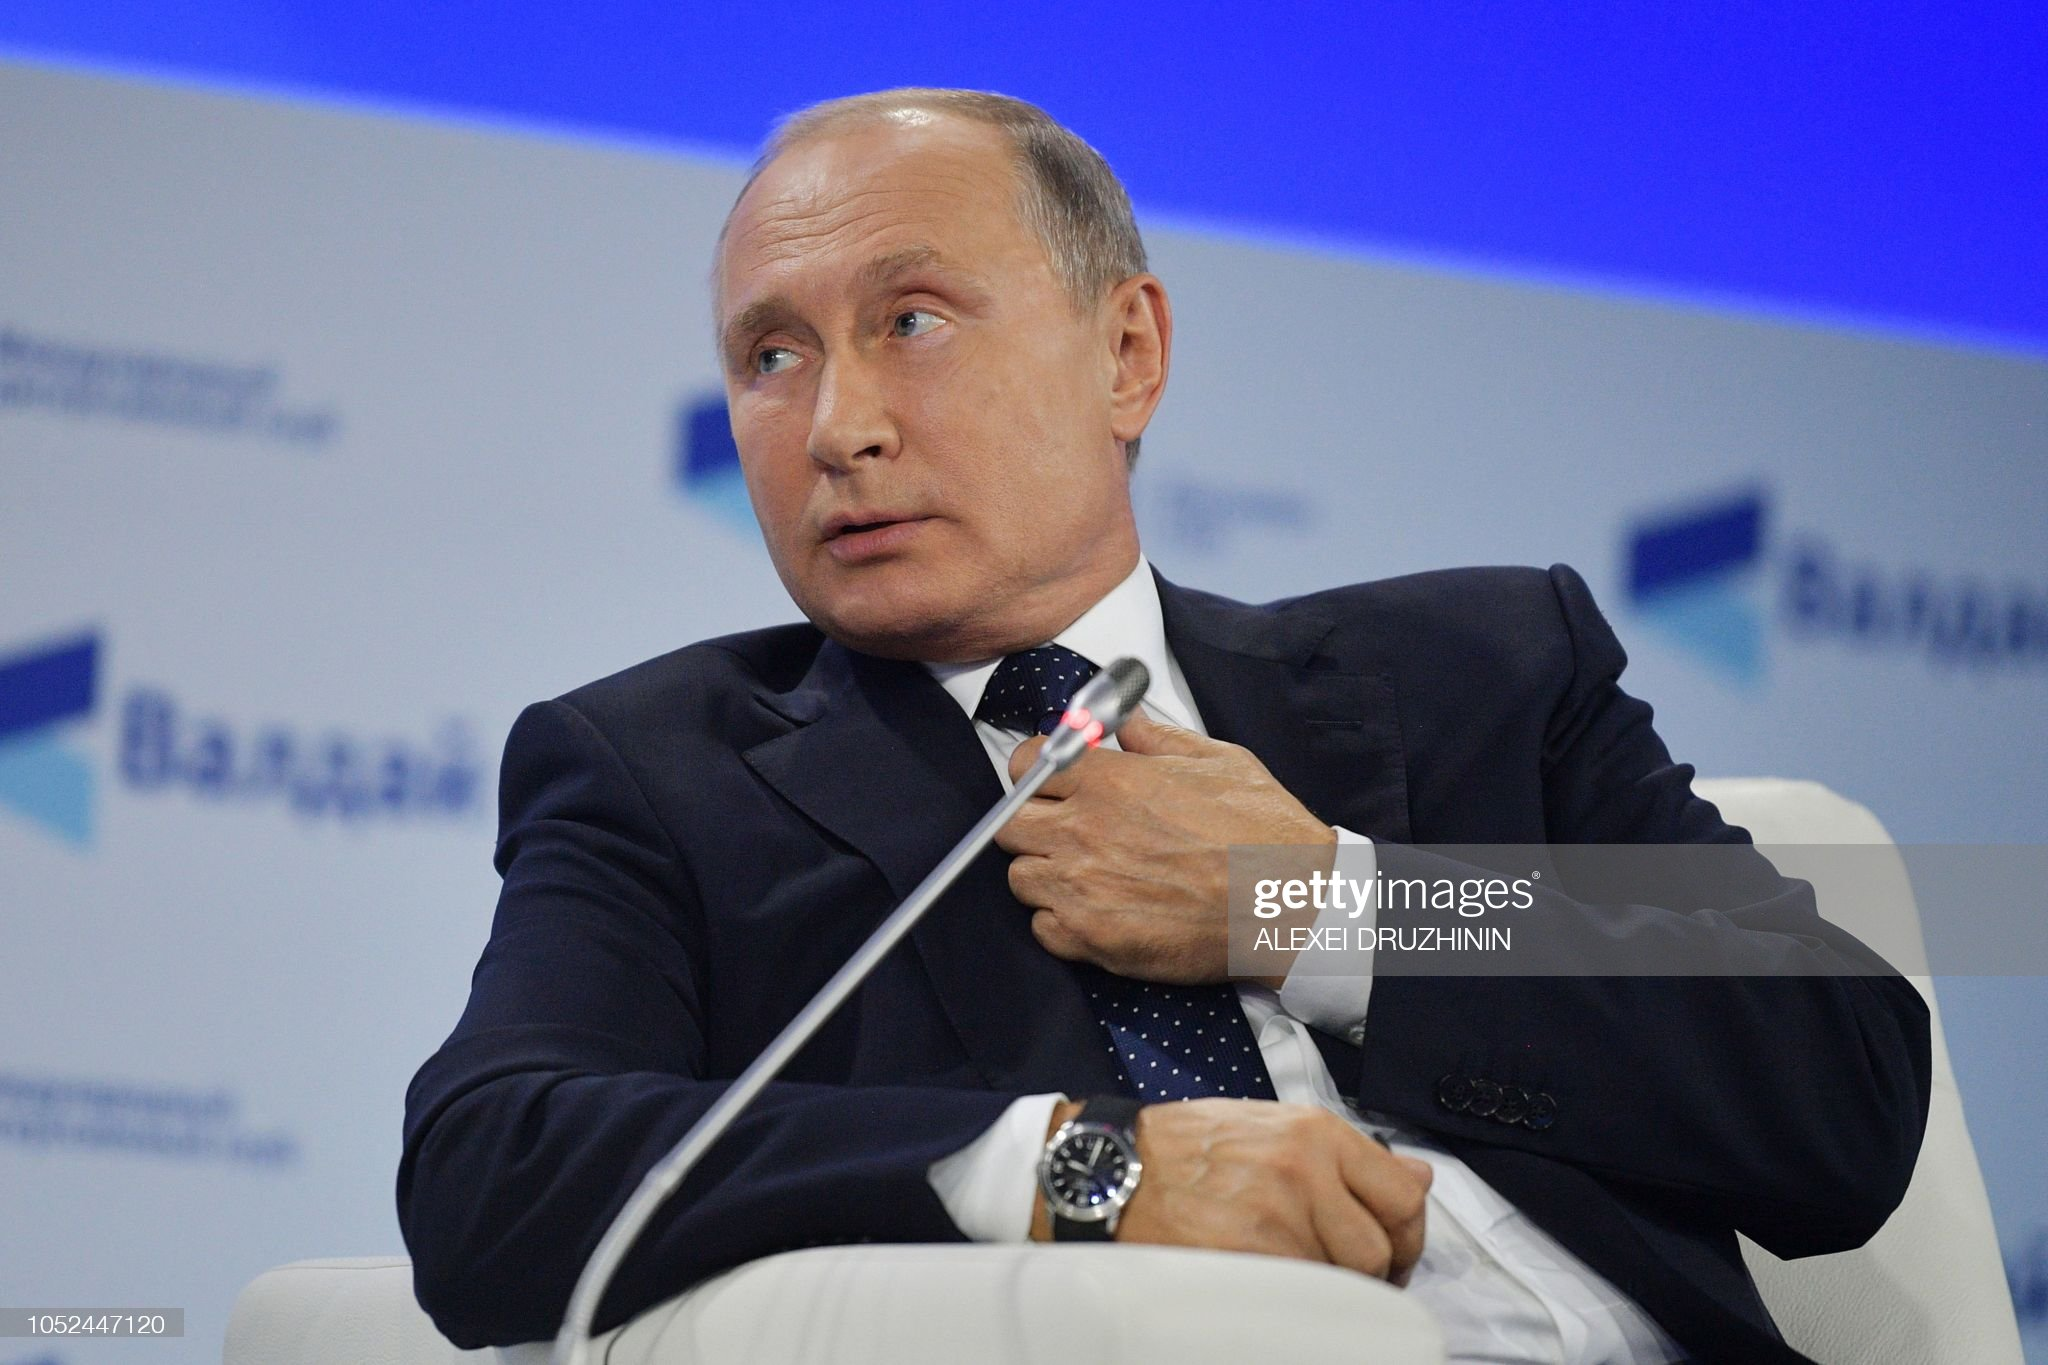 RUSSIA-POLITICS-MEETING : News Photo